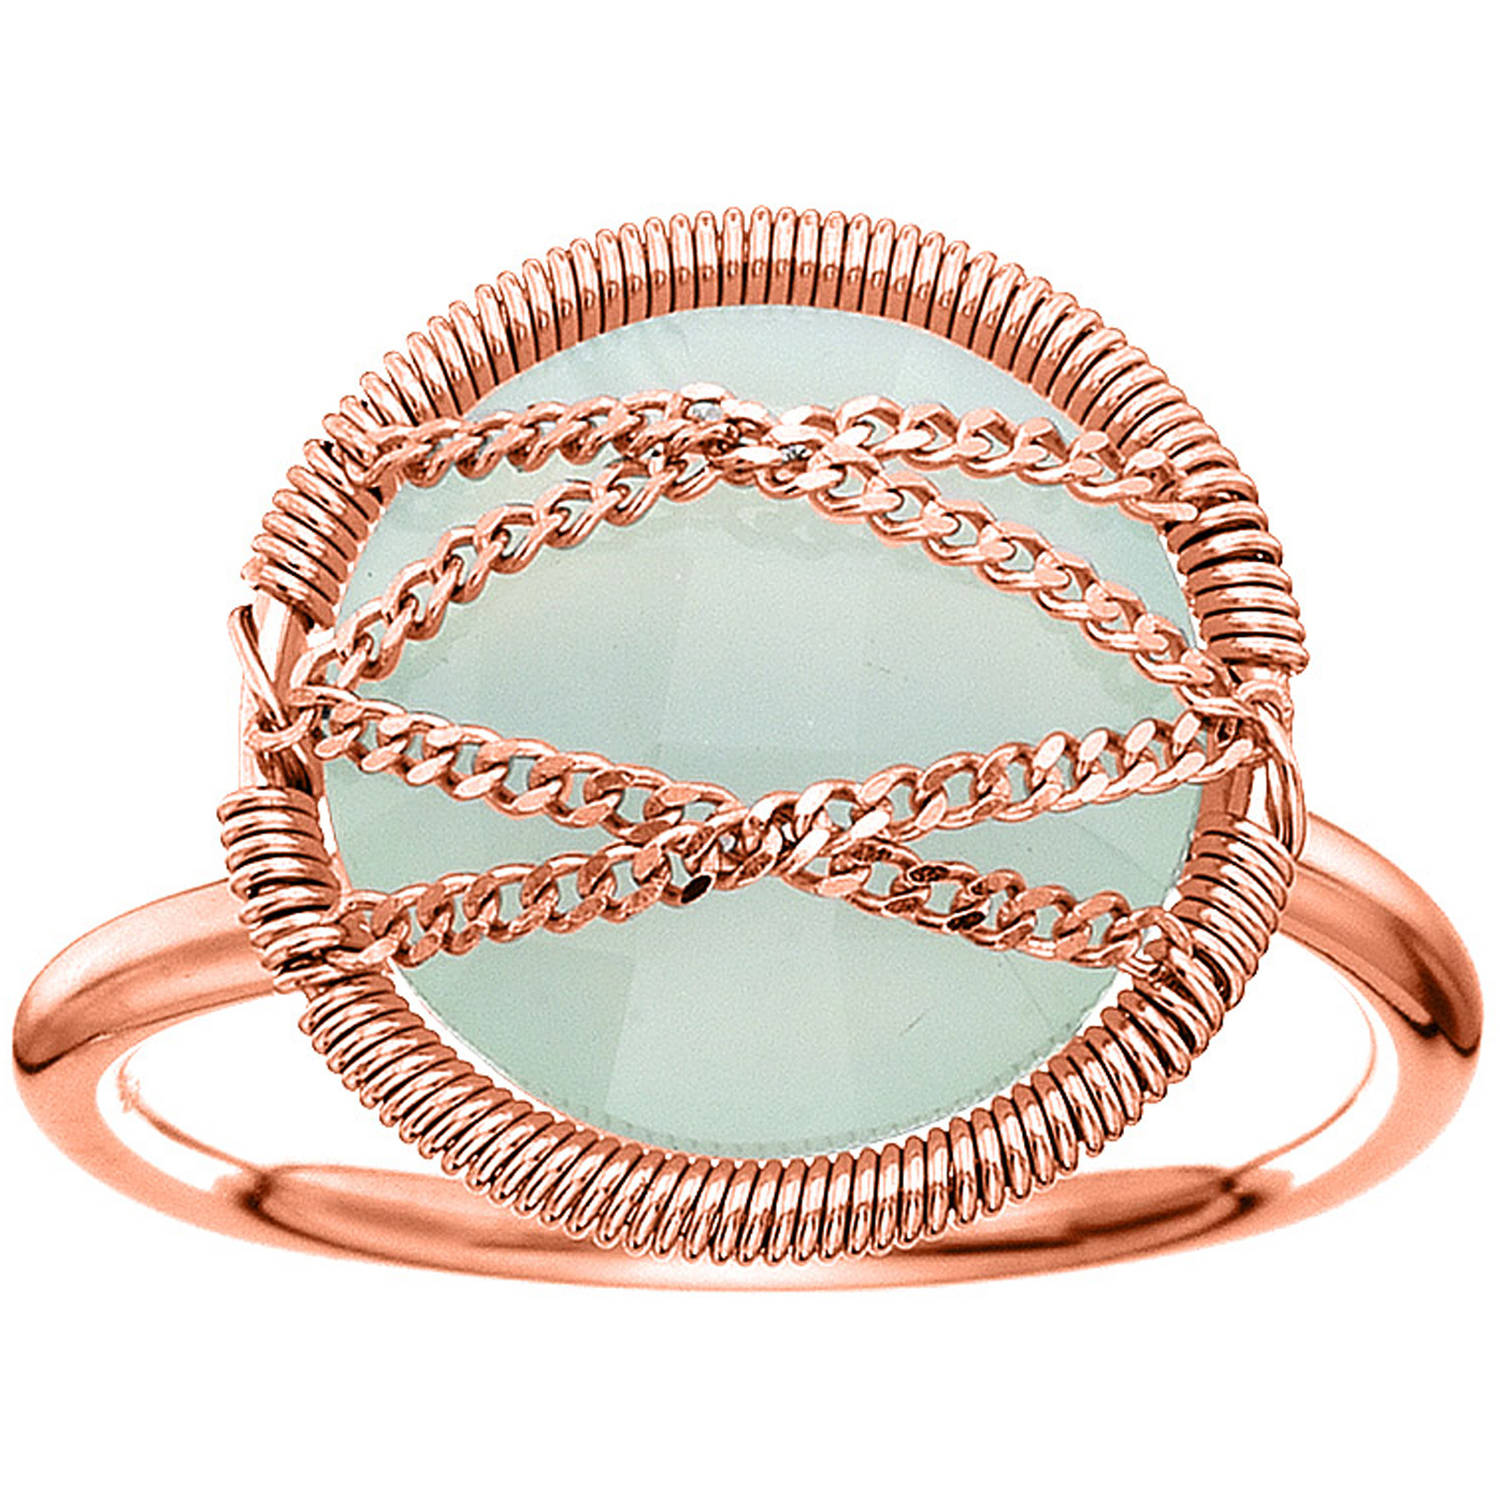 5th & Main Rose Gold over Sterling Silver Hand-Wrapped Round Chalcedony Stone Ring by Generic